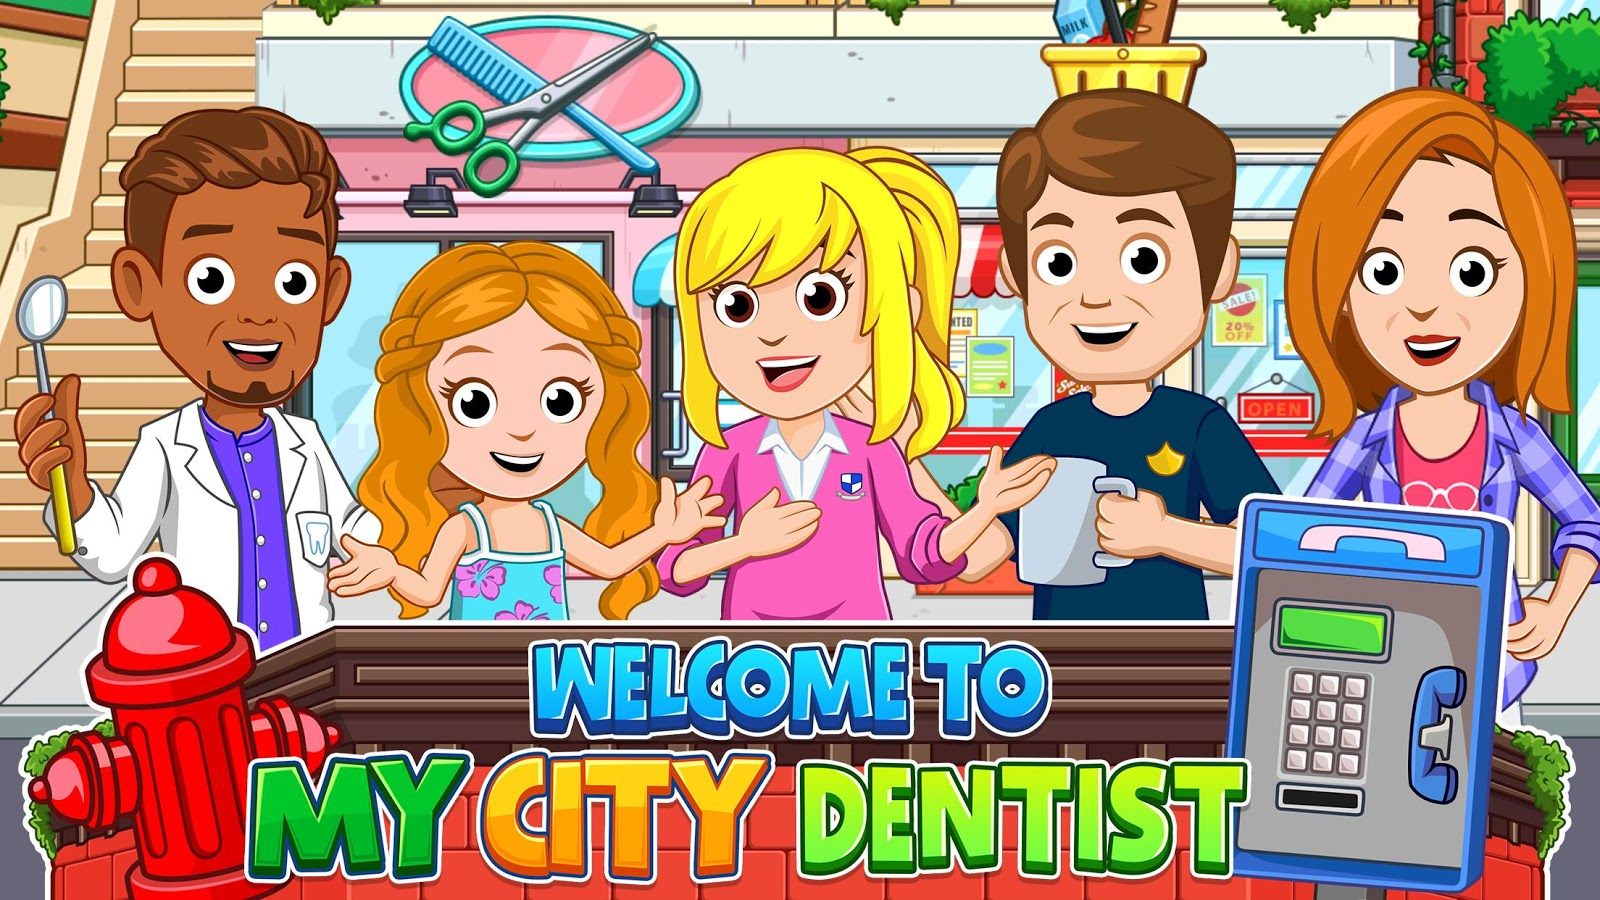 mycity dentist 2 0 29 APK Download - Android cats  Apps